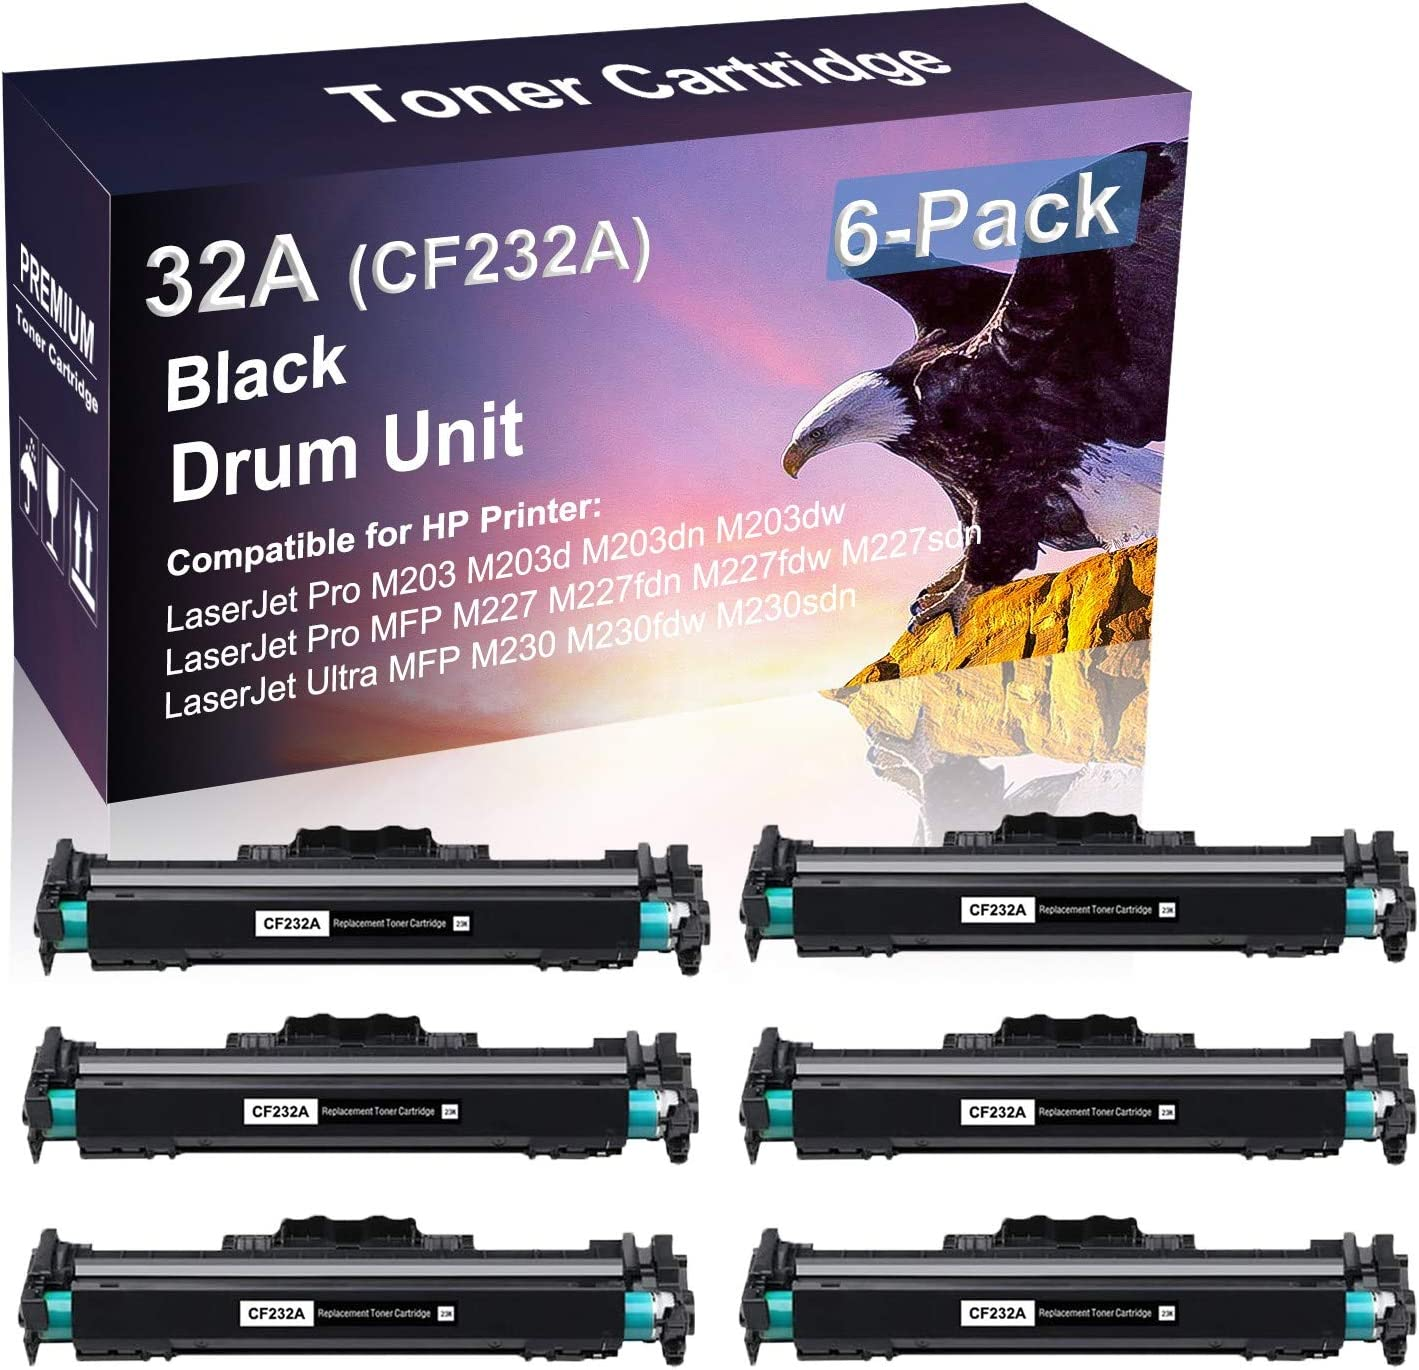 6 Pack Black Compatible Imaging San Francisco Mall Drum High Replacement 2021 autumn and winter new Yield